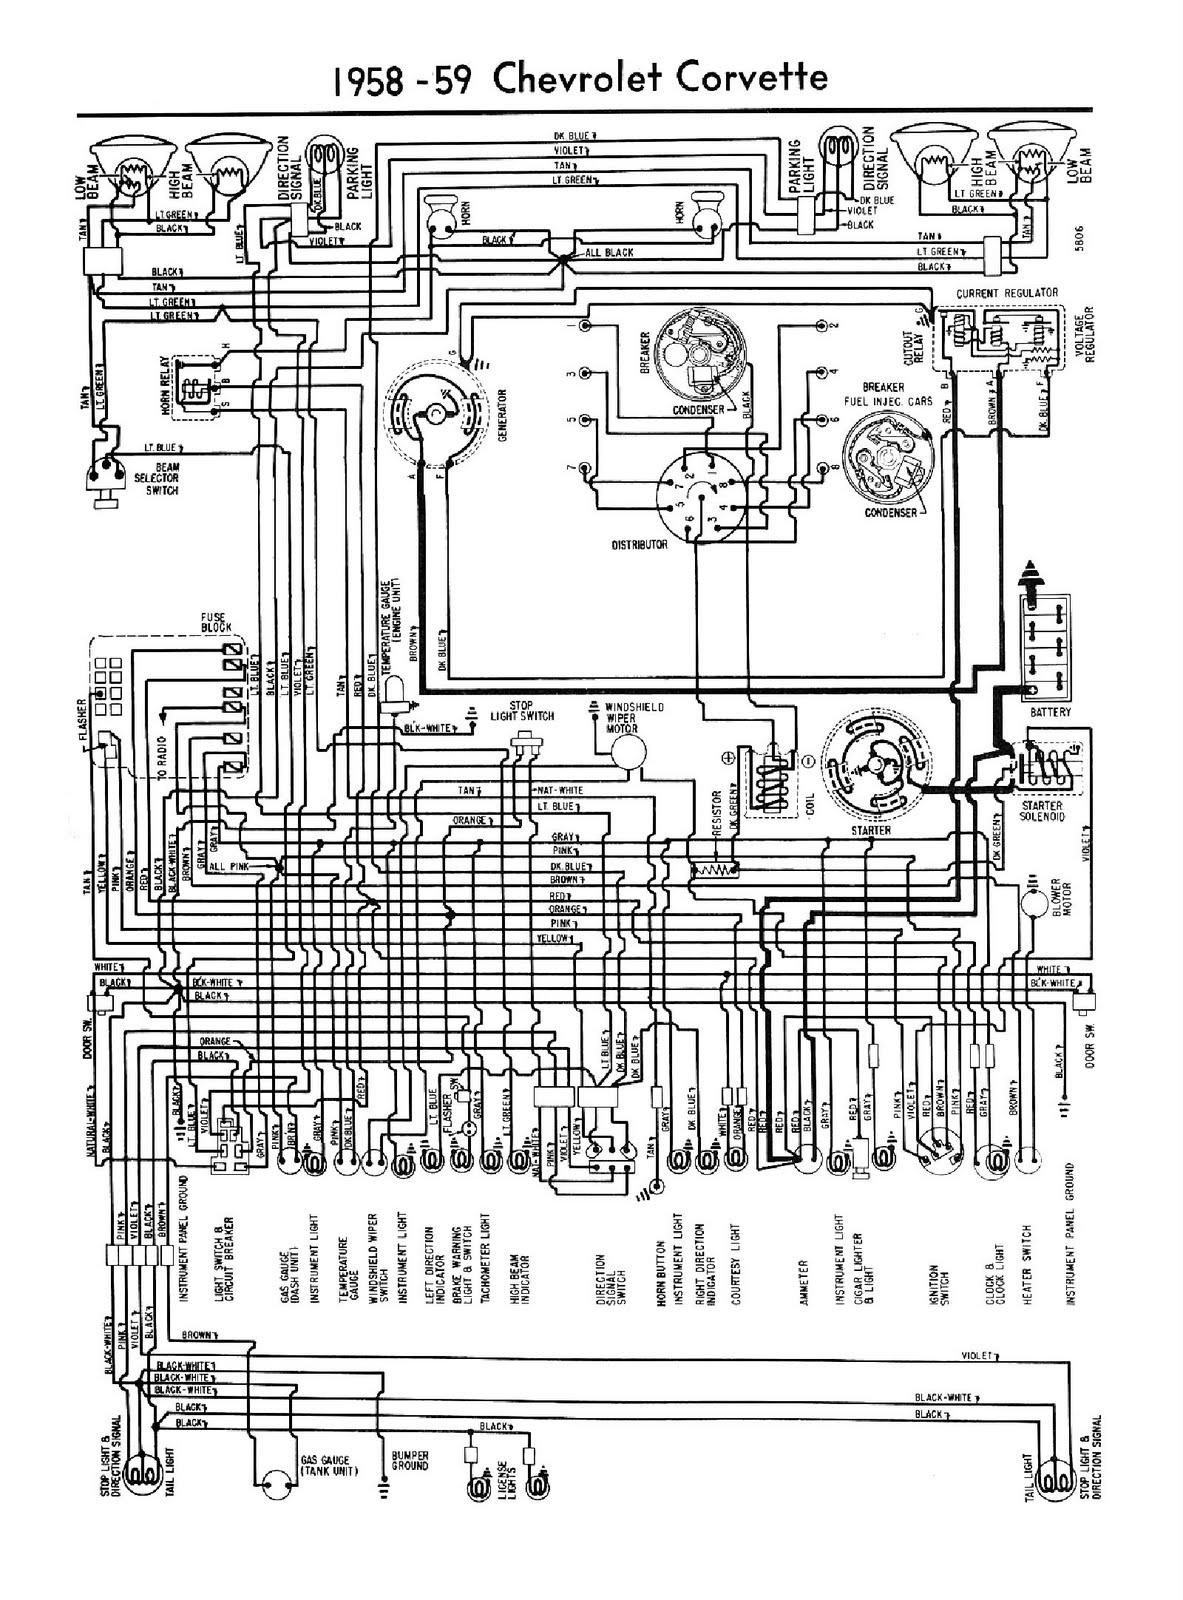 1959 chevy ignition wiring wiring diagram new 1959 gm starter wiring diagram wiring diagram 1958 chevy [ 1183 x 1600 Pixel ]